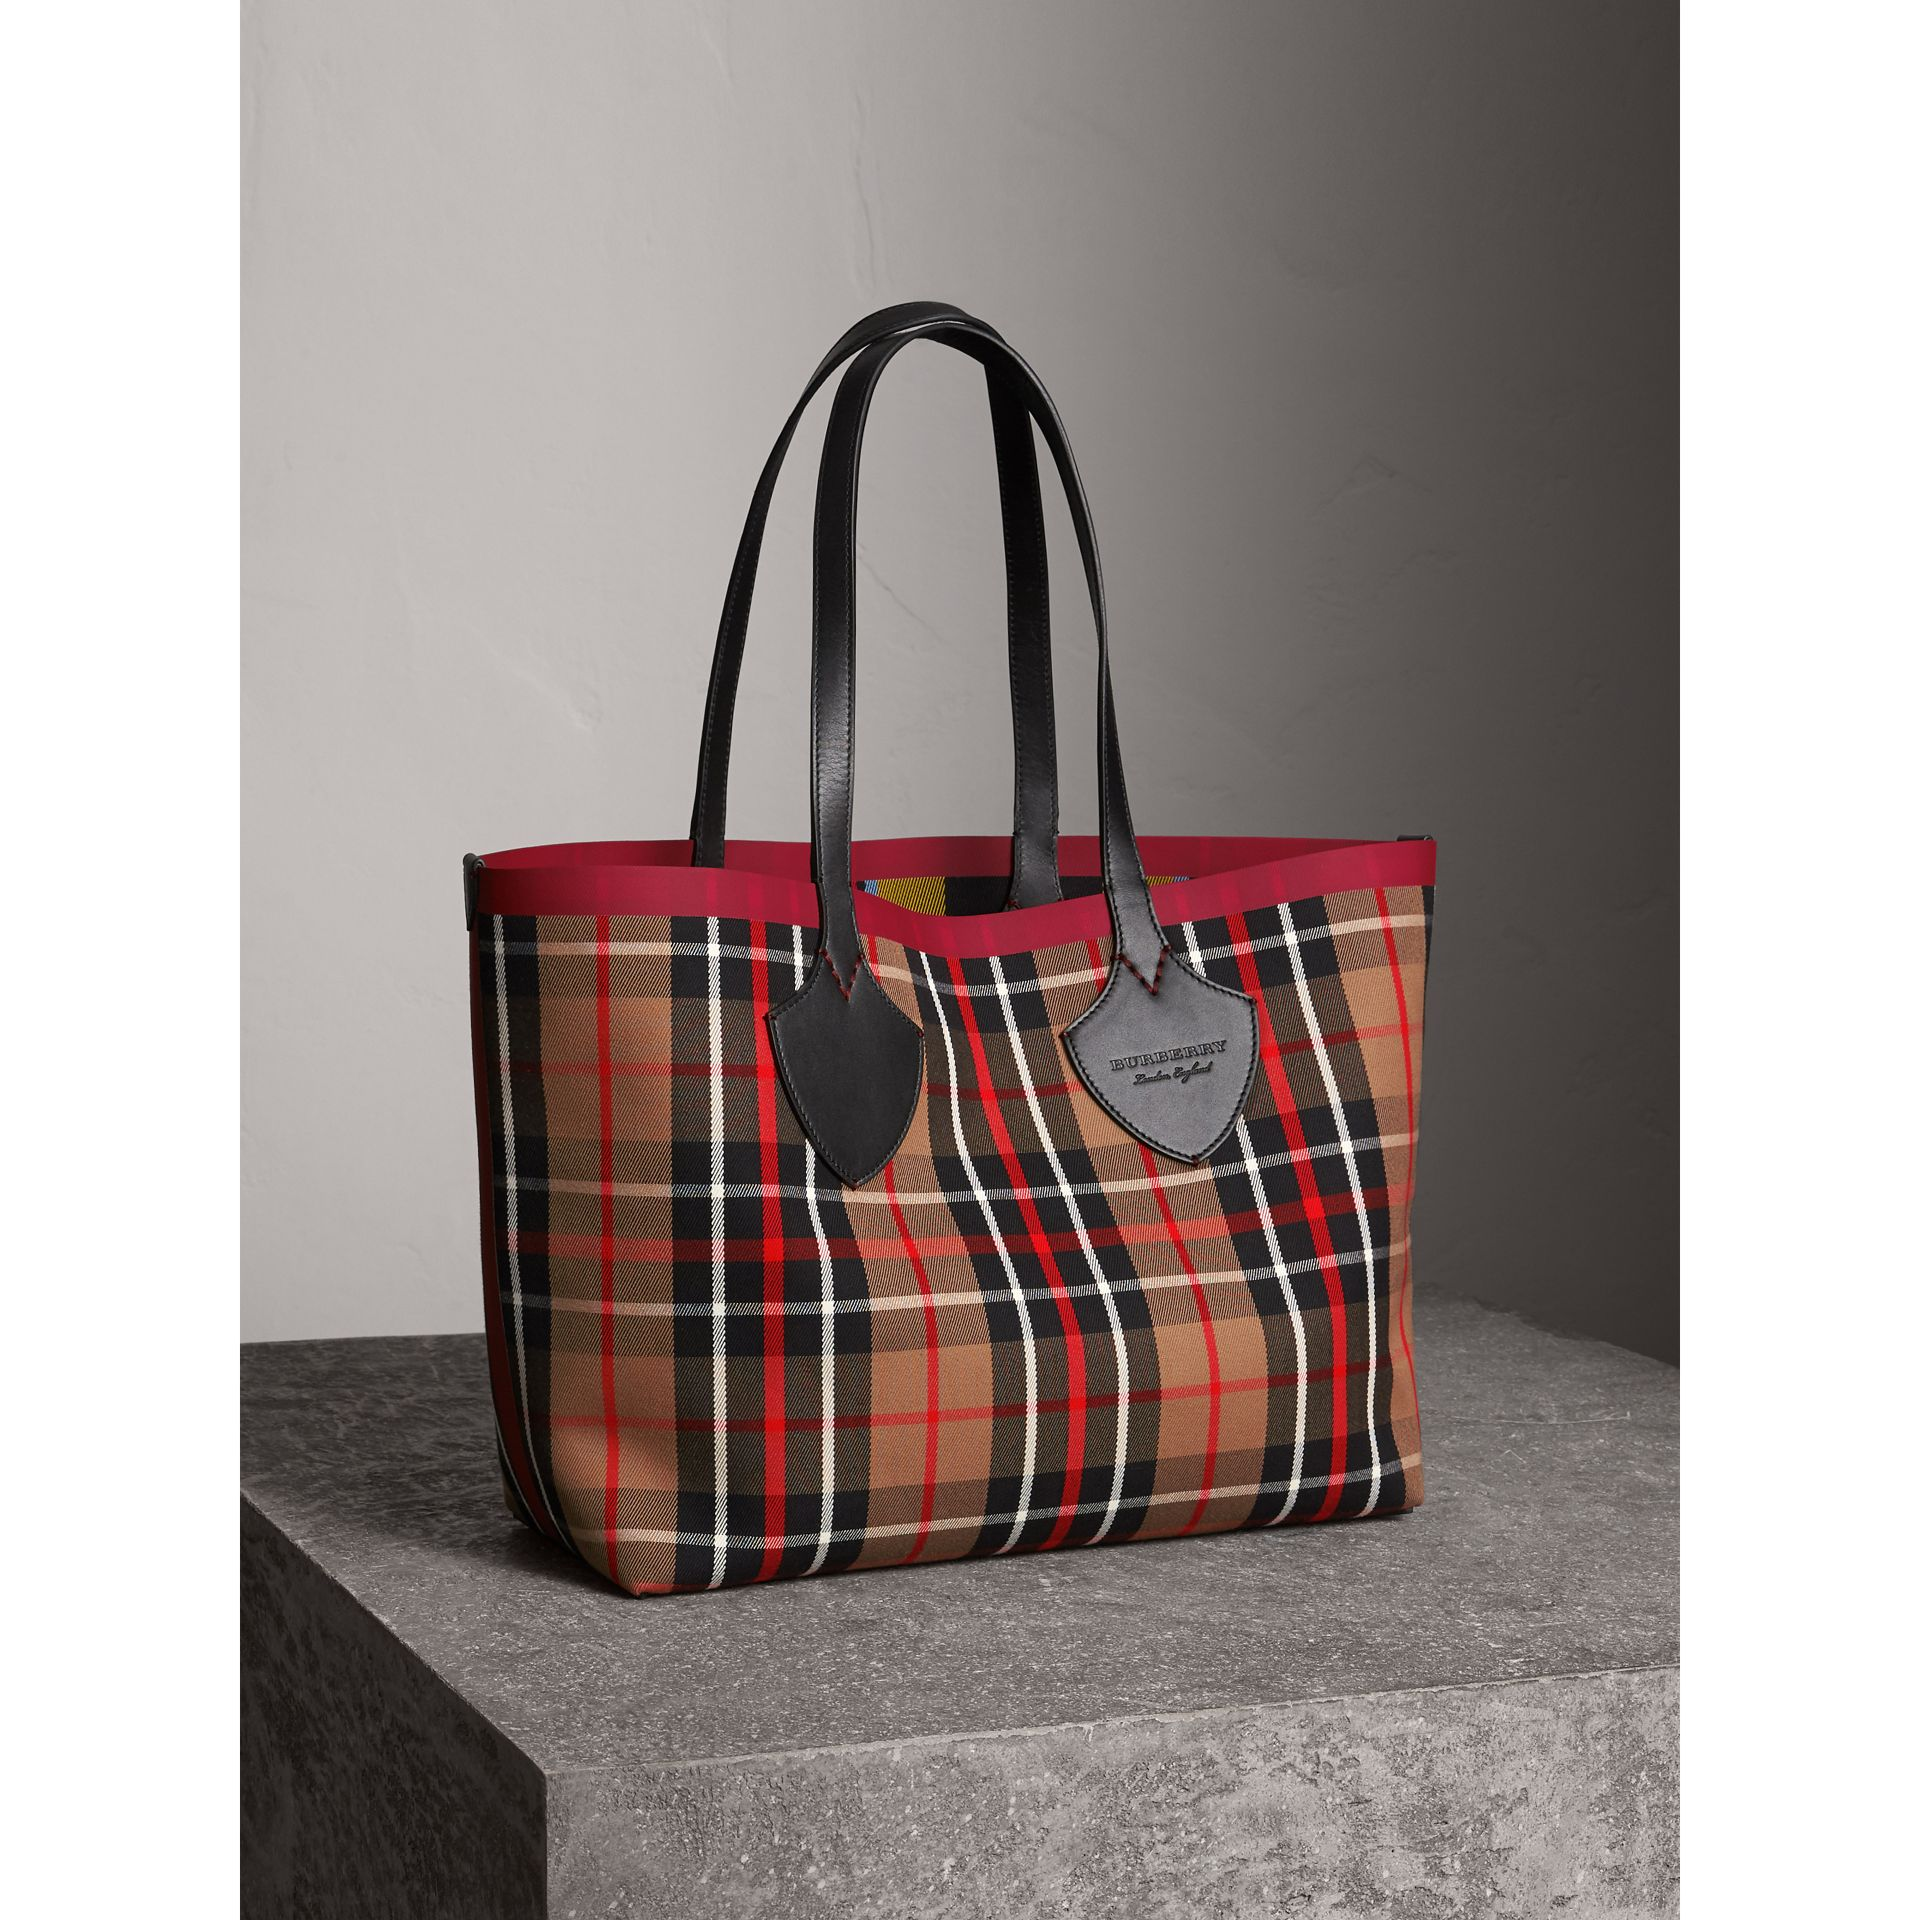 Sac tote The Giant moyen réversible en coton tartan (Caramel/jaune Lin) | Burberry Canada - photo de la galerie 6